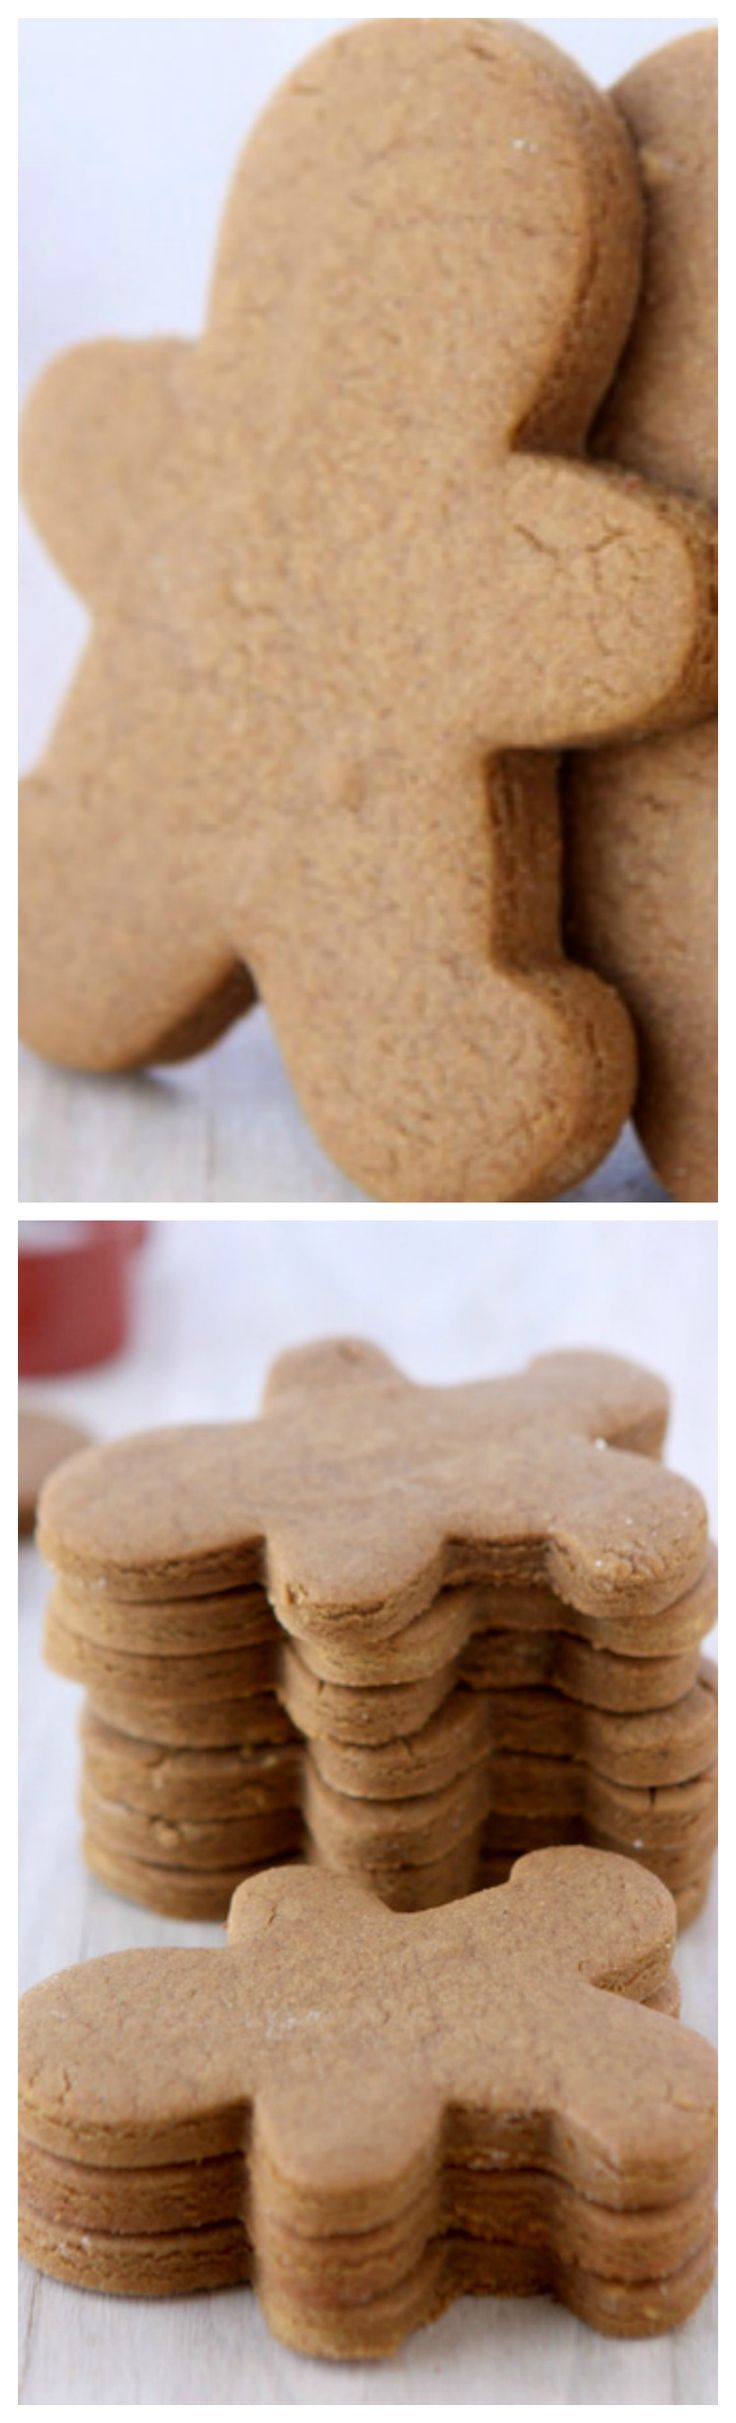 Gingerbread Cookies That Won\'t Spread ~ Looking for the perfect gingerbread cookie recipe? Here you go! These cookies keep their shape, and won't spread during baking!